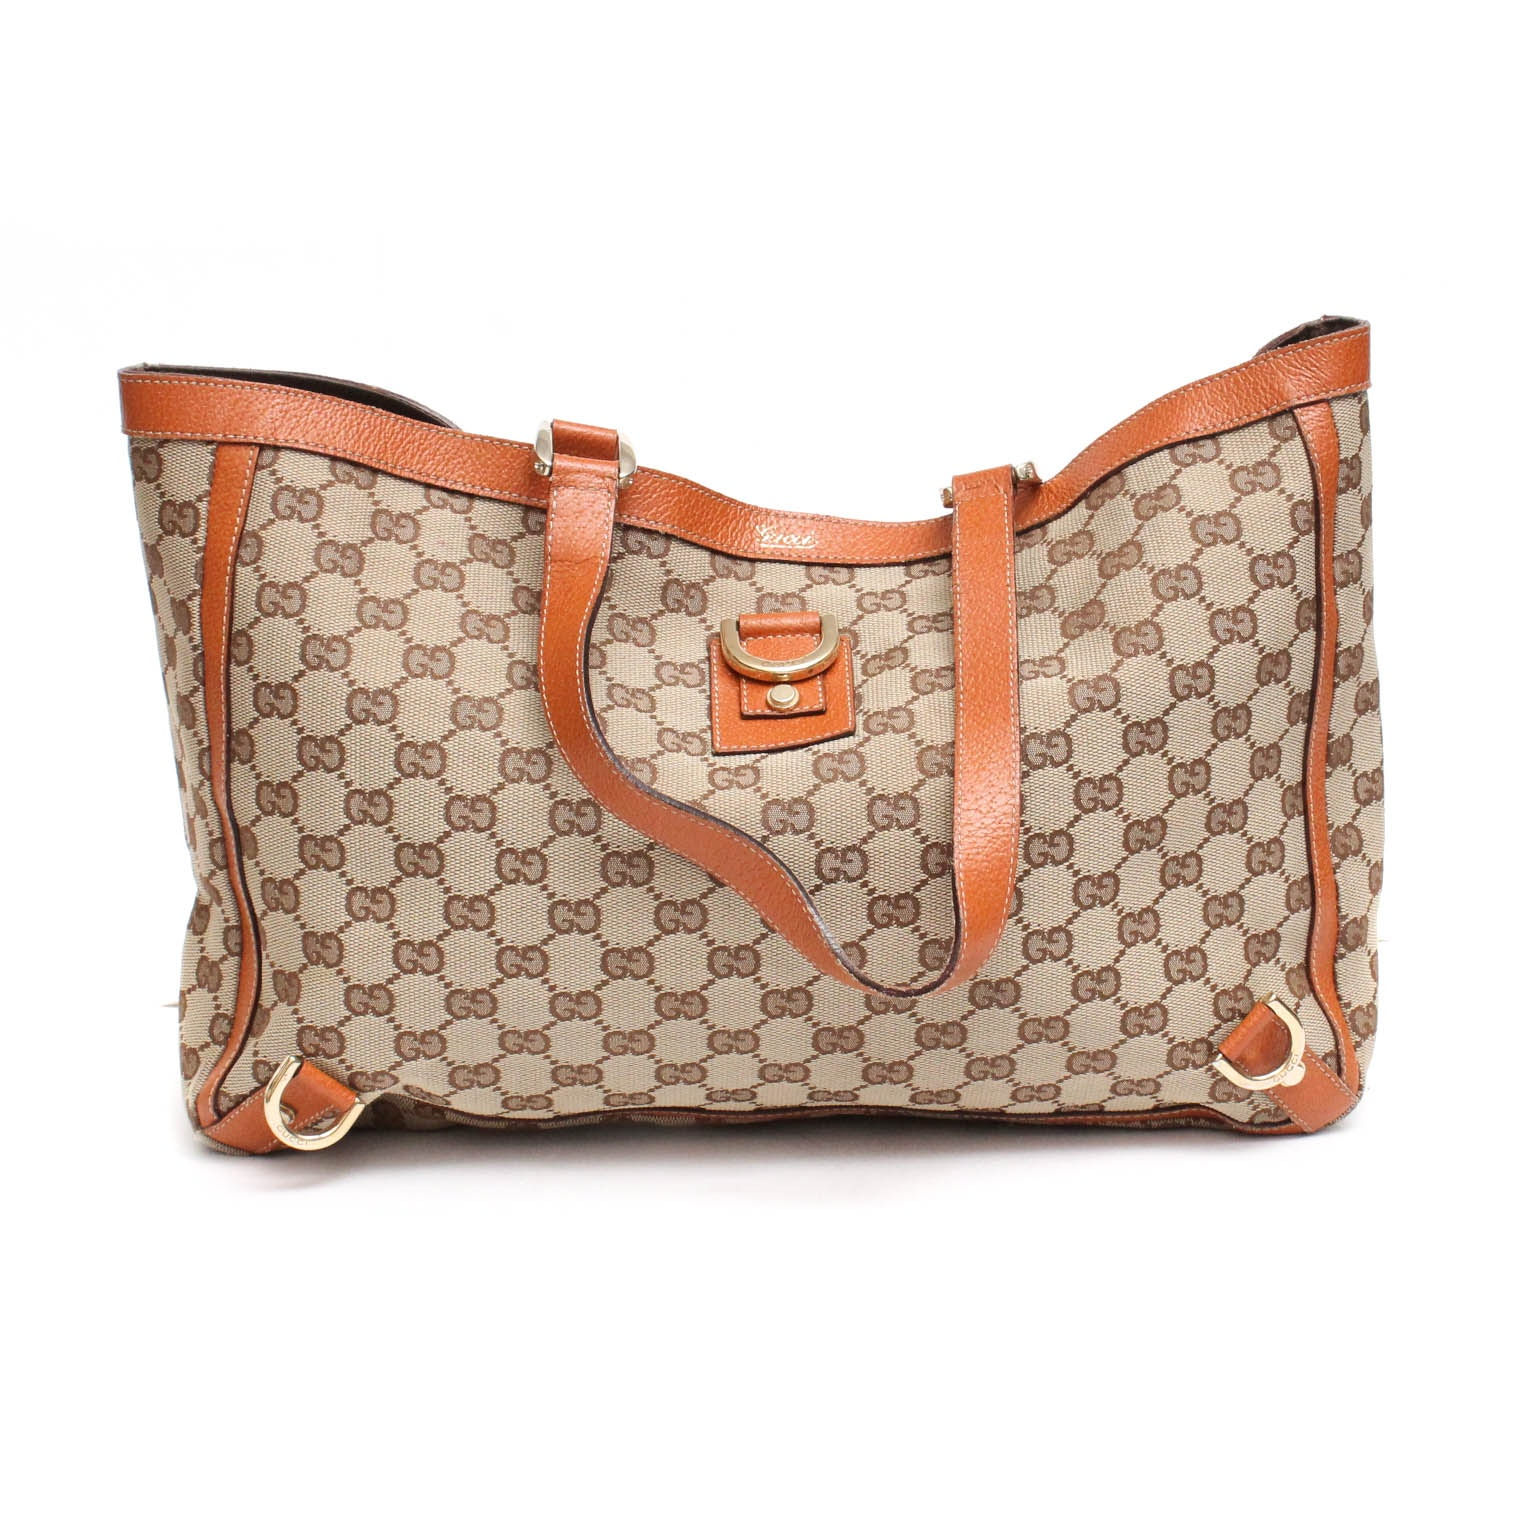 Gucci GG Monogramed Canvas and Leather Abbey Tote